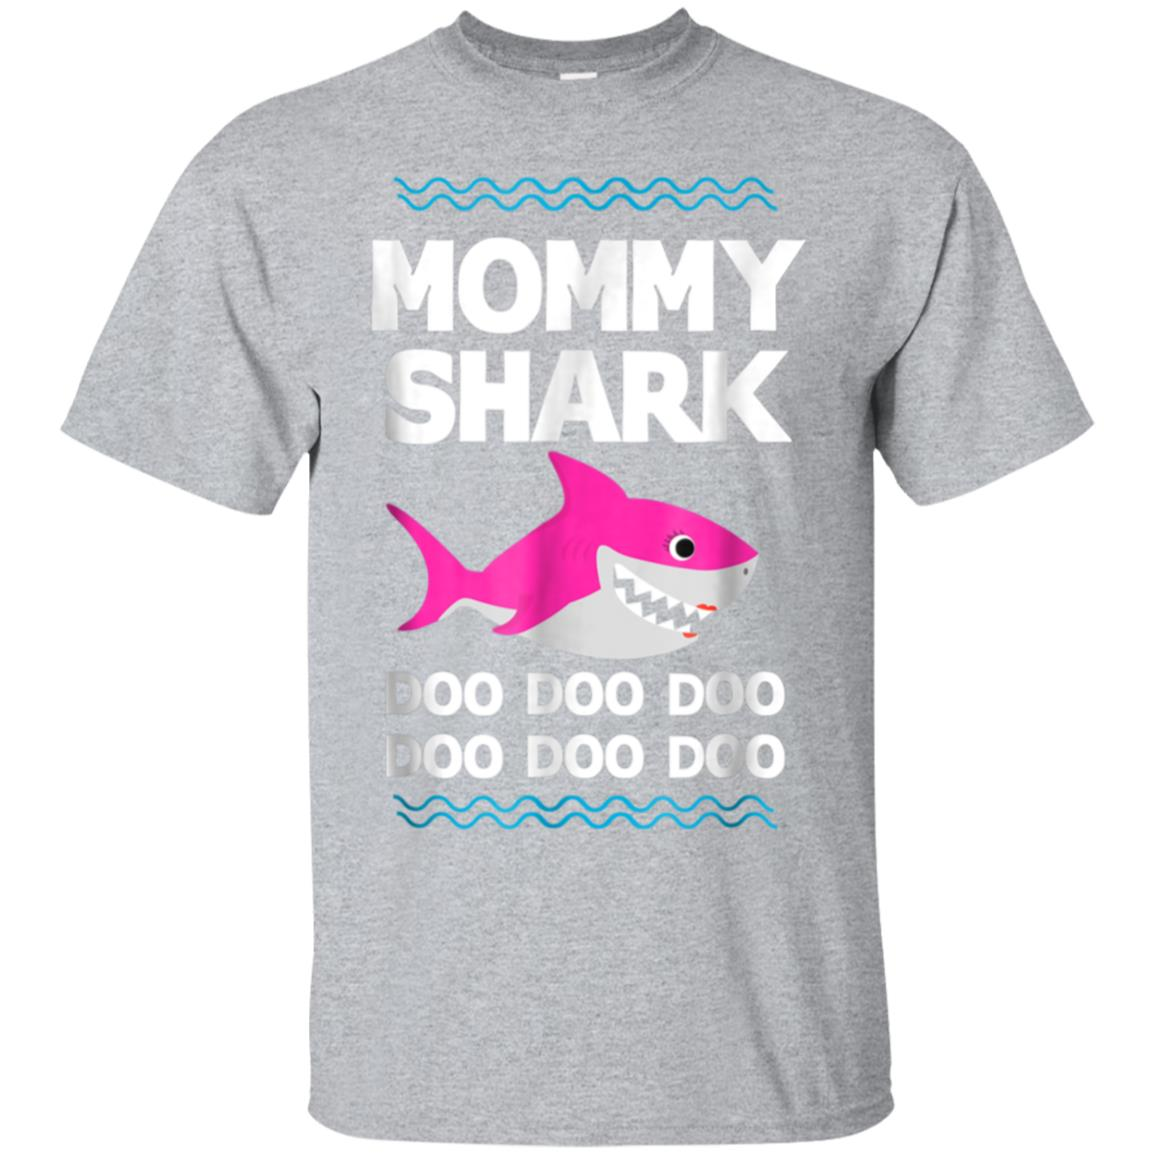 Mommy Shark Doo Doo T-Shirt Funny Kids Video Baby Daddy 99promocode